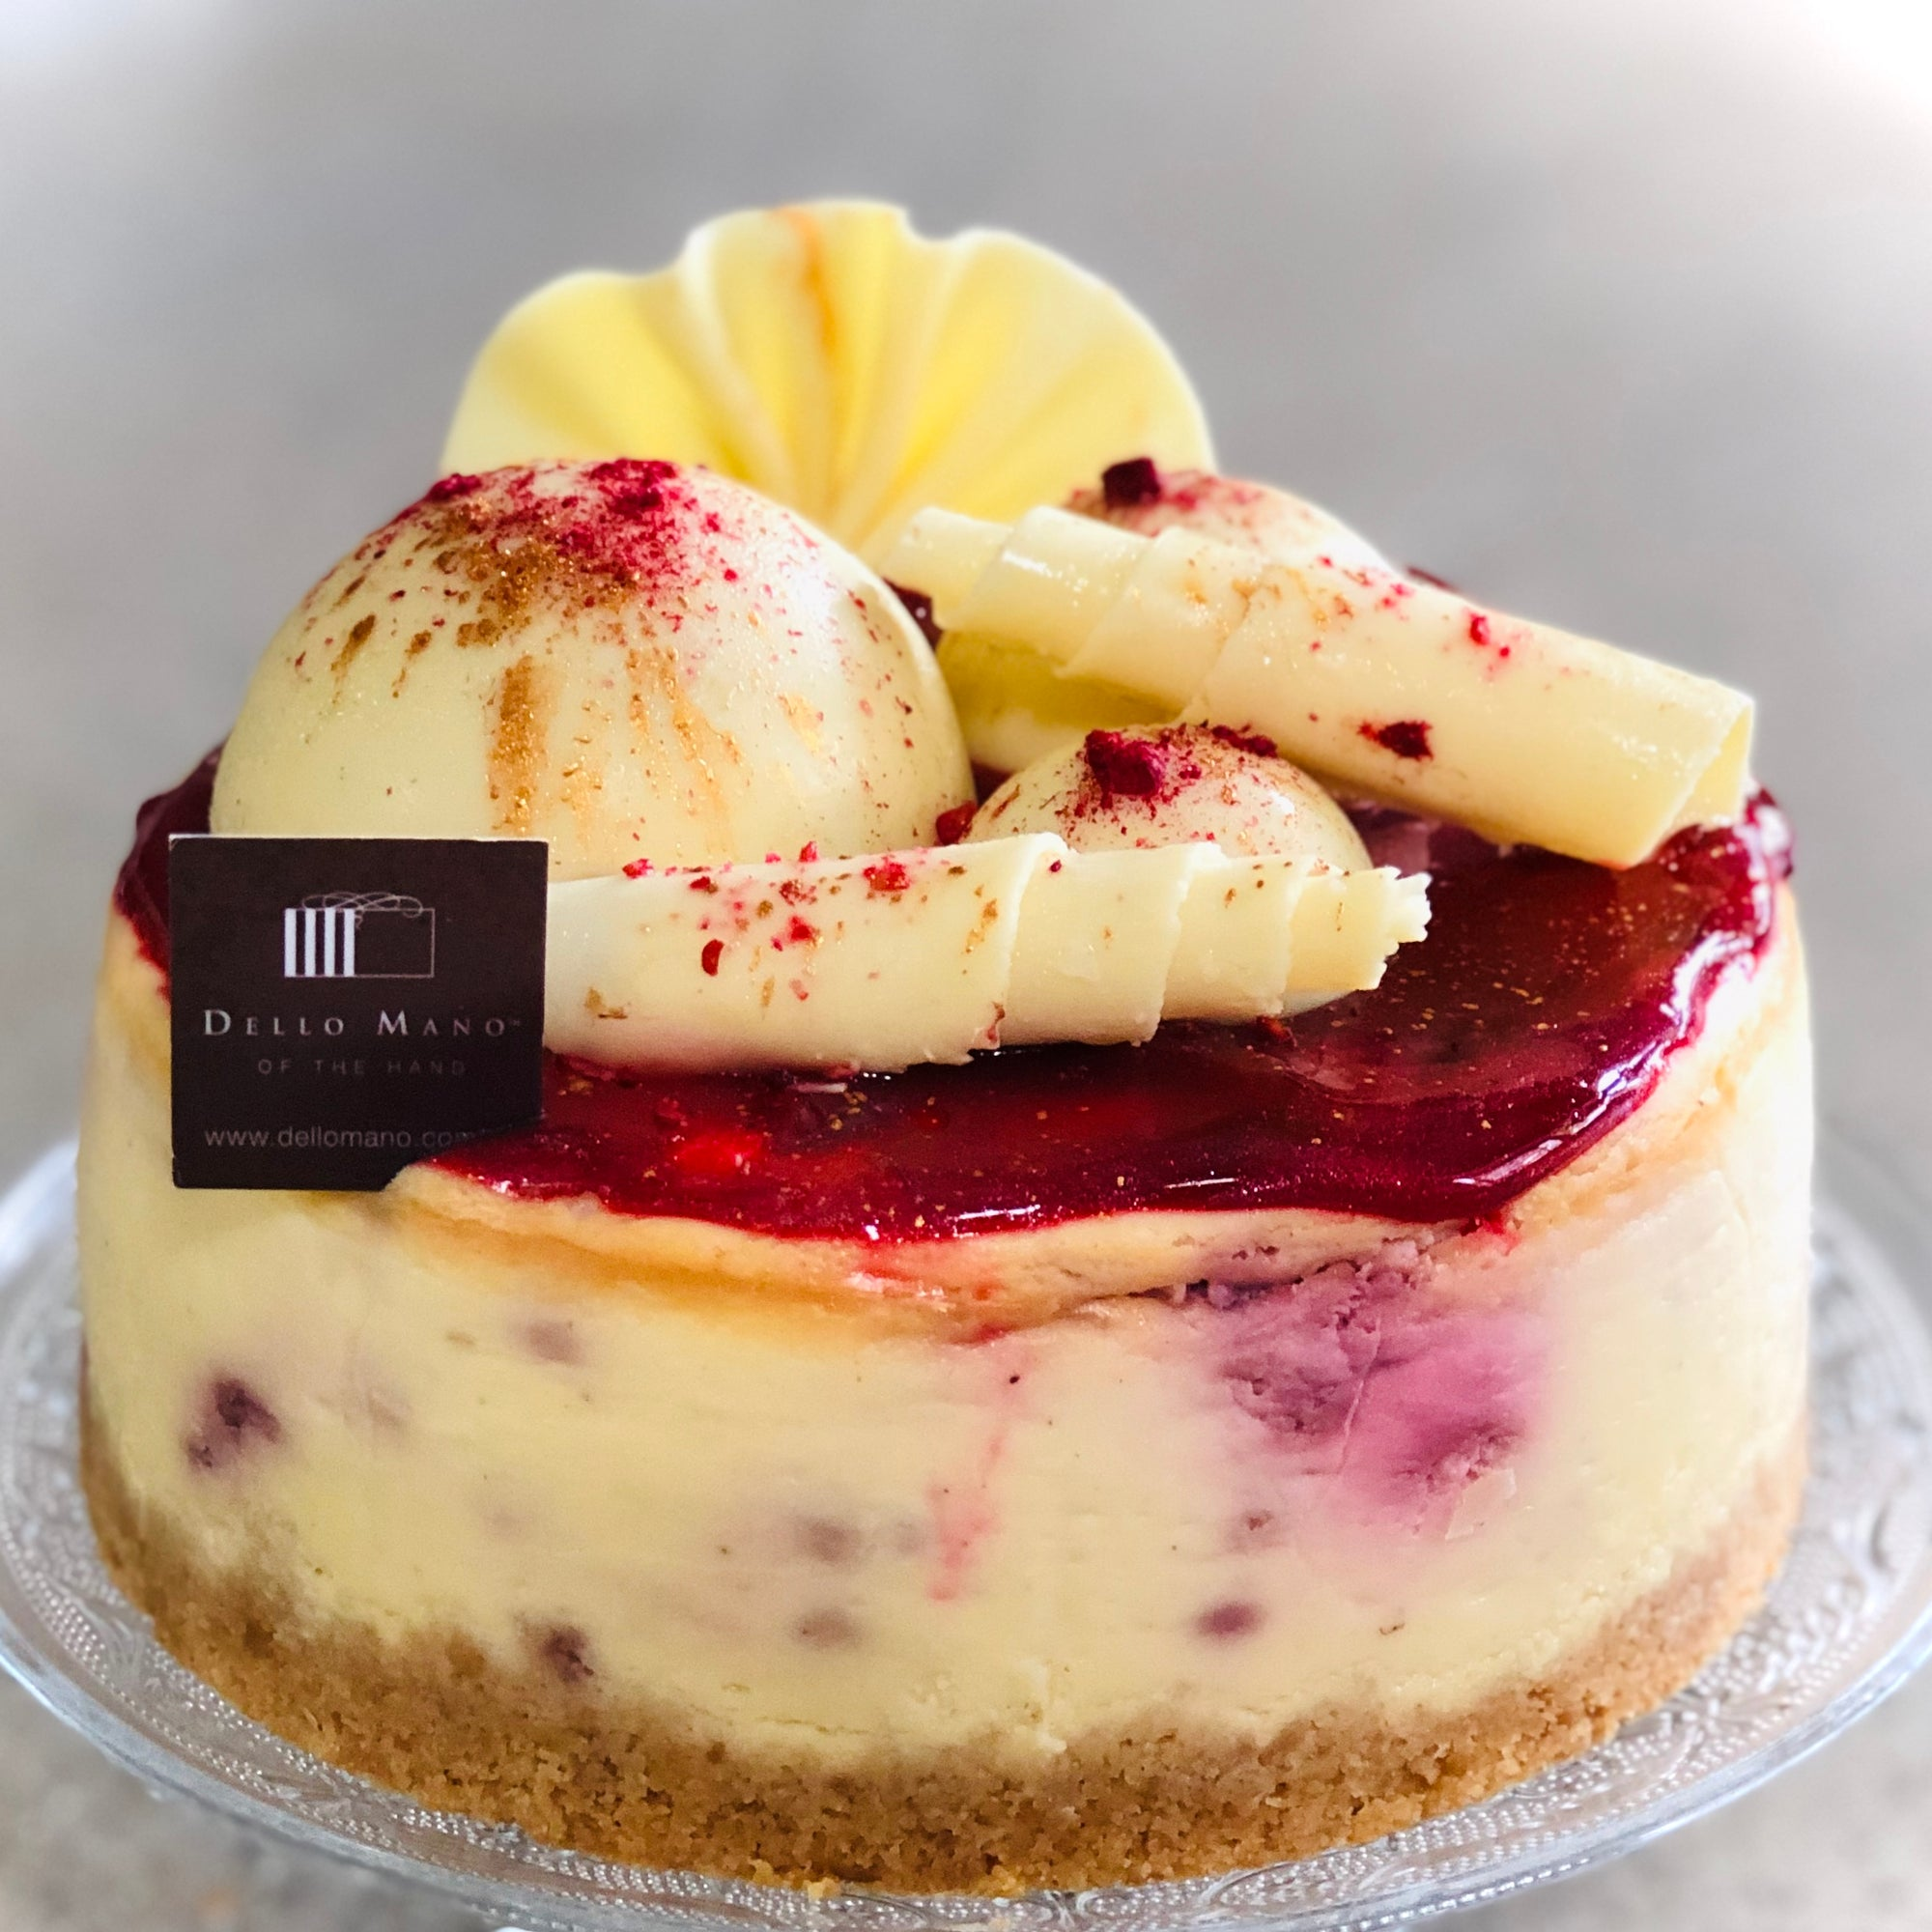 A raspberry white chocolate cheesecake decorated with Belgian White Chocolate decorations